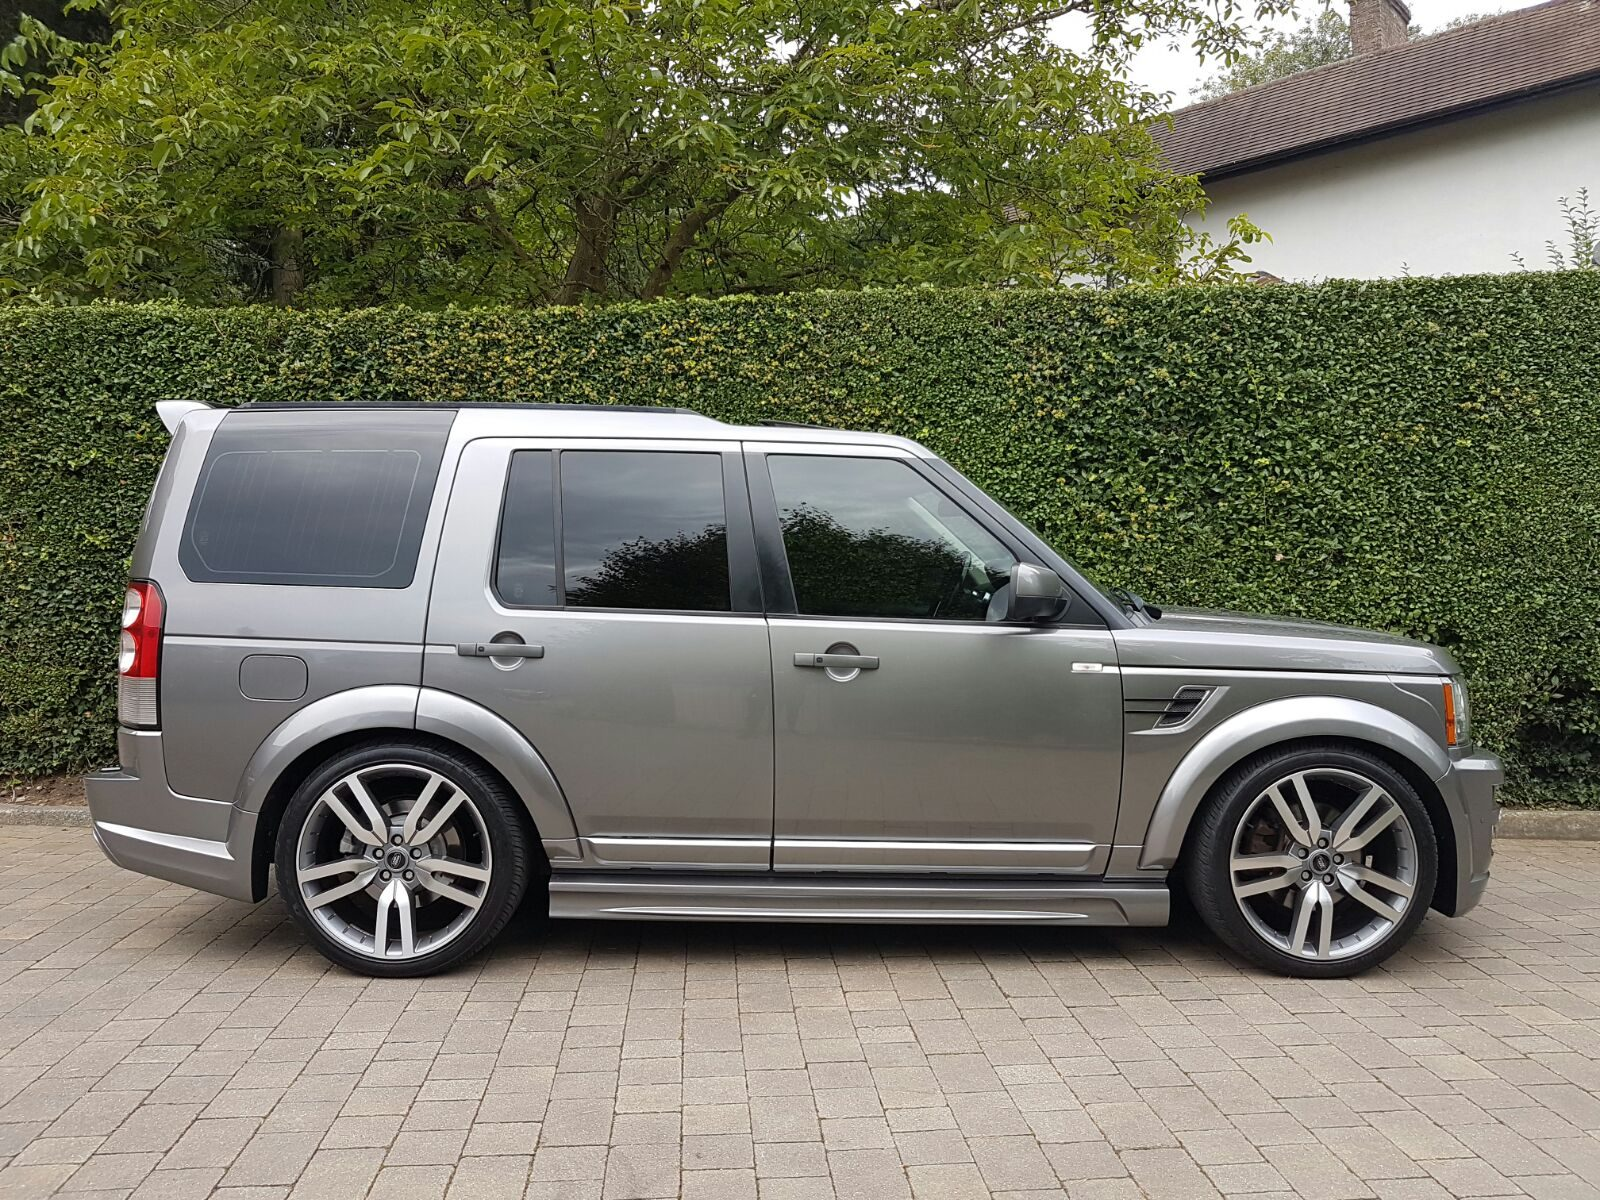 New Land Rover Discovery >> Land Rover Discovery | Full Body Kit | Xclusive Customz